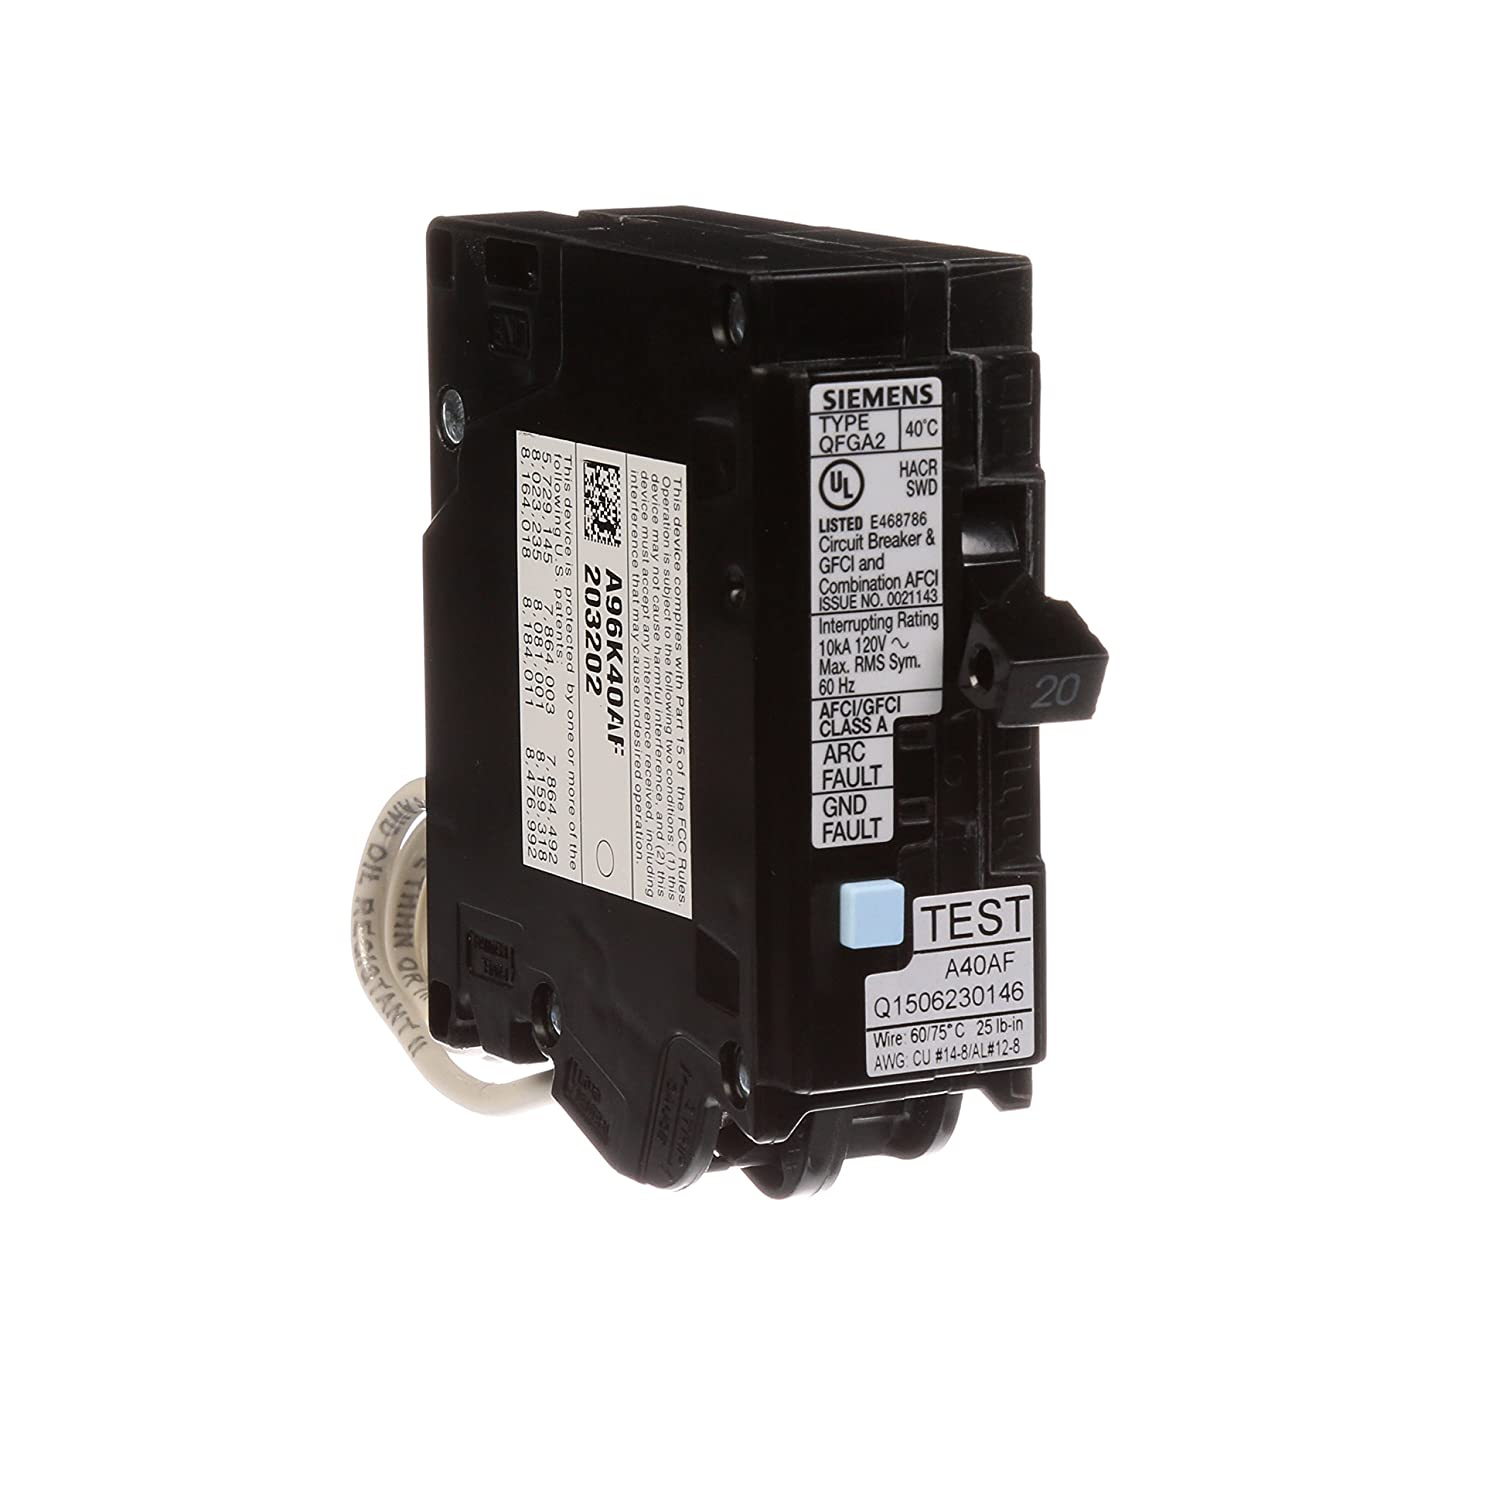 Siemens Q120df 20 Amp Afci Gfci Dual Function Circuit Breaker Plug Electrical I Am Having Problems With My Breakers Can You On Load Center Style